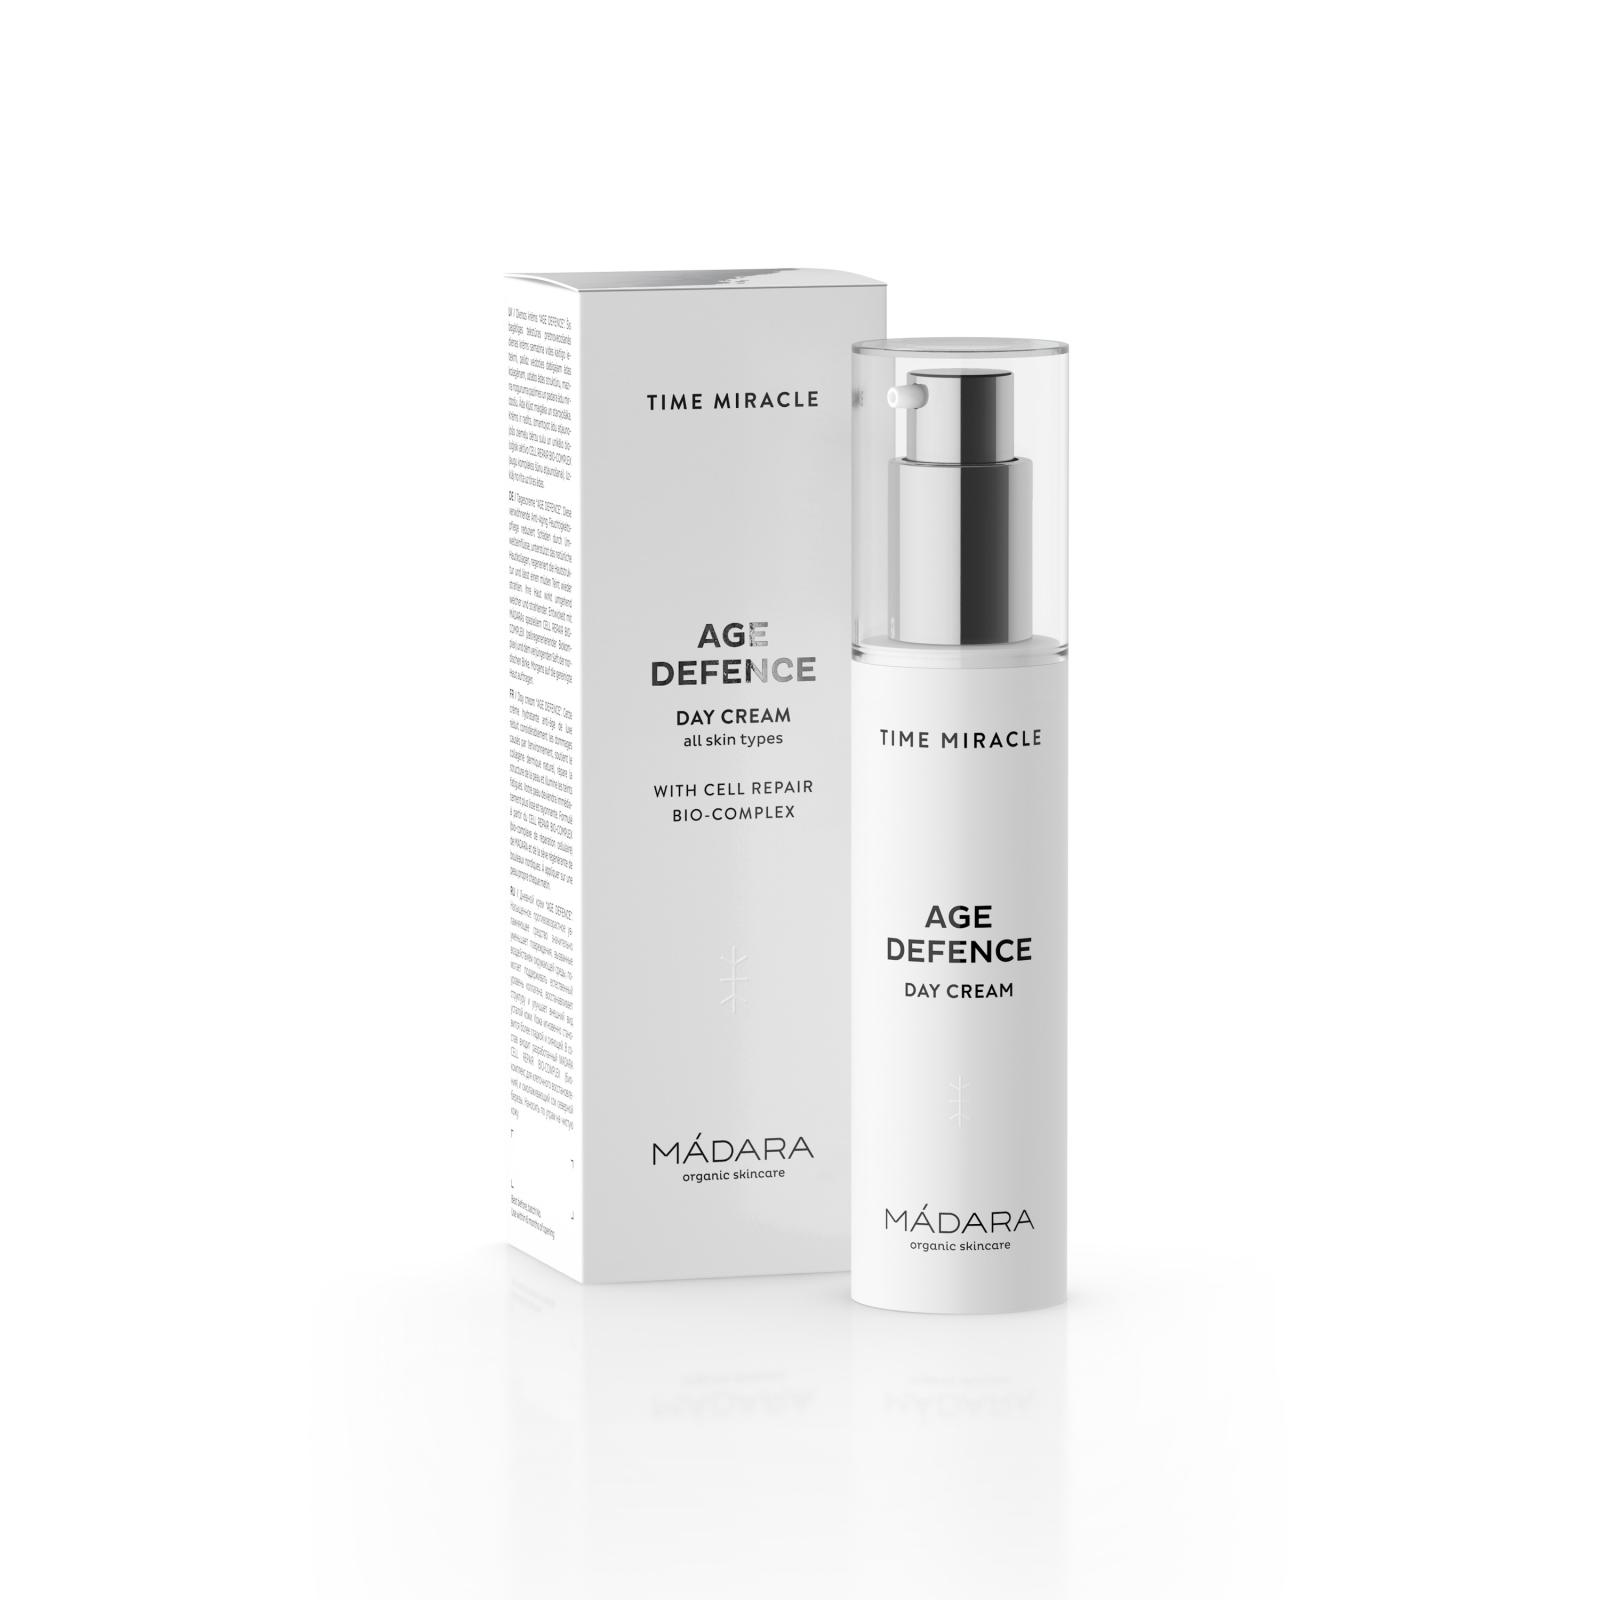 Mádara Anti-age denní krém, Time Miracle 50 ml